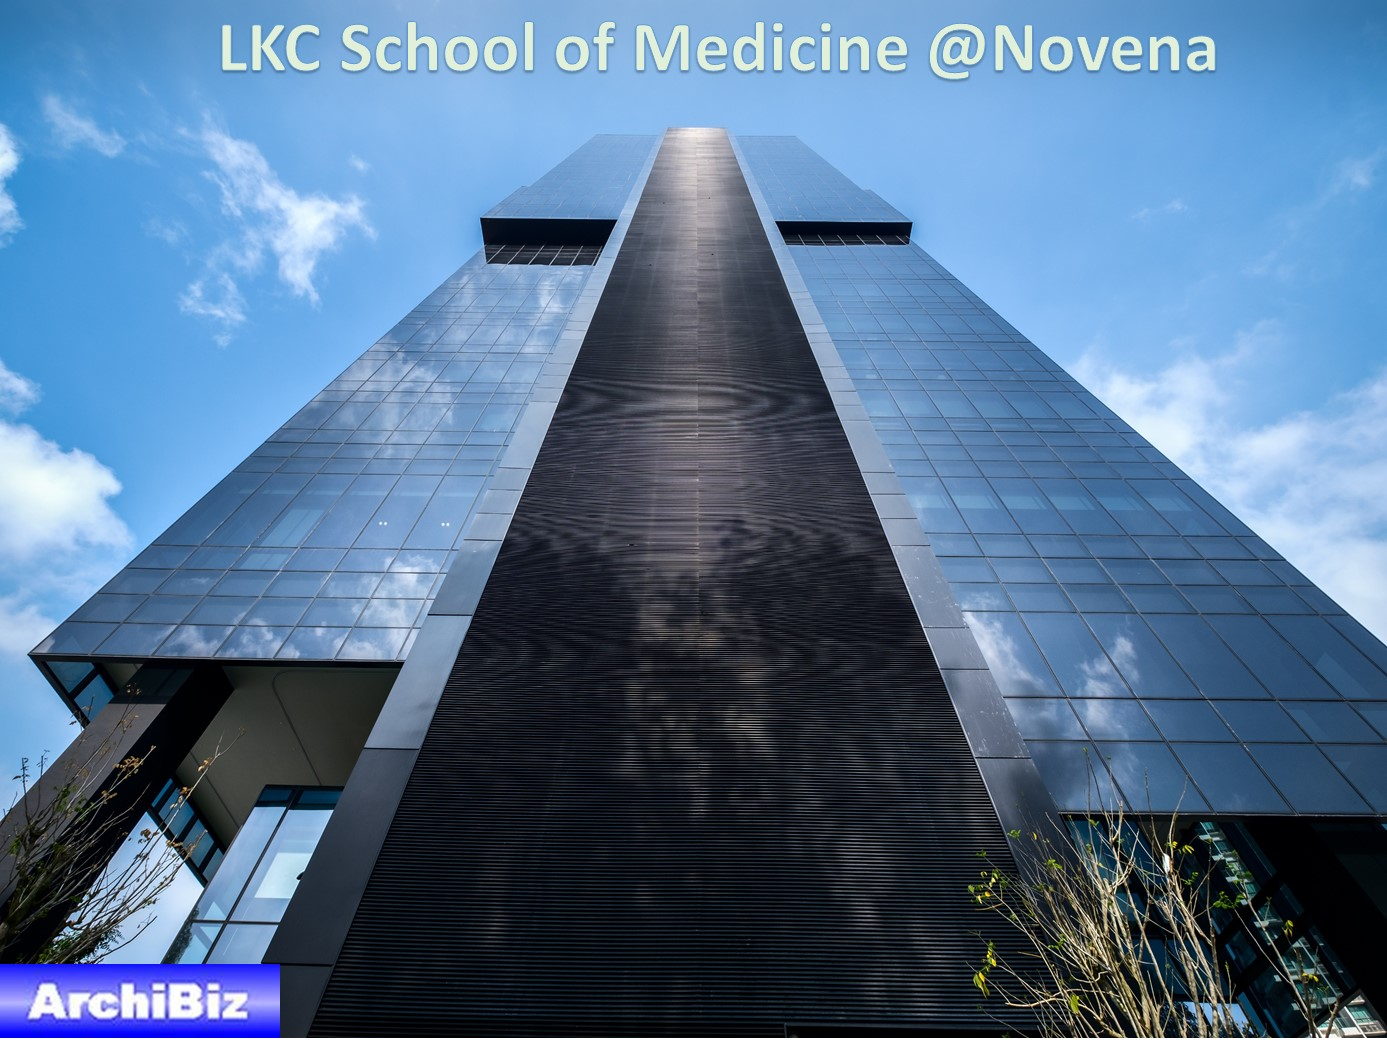 LKC School of Medicine @Novena (6)